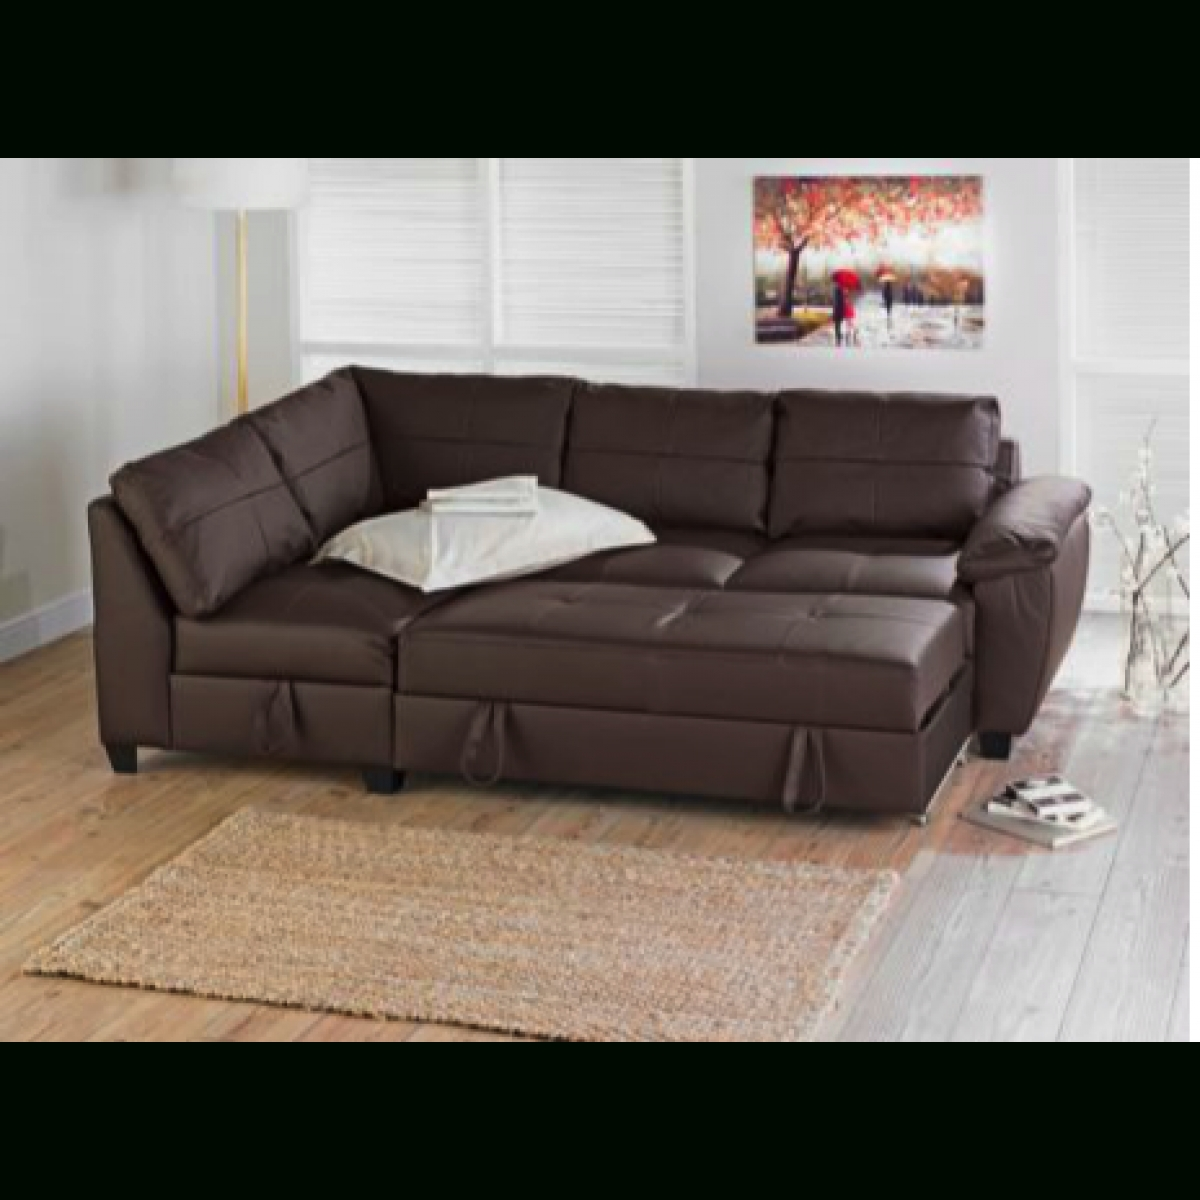 Fernando Leather Left Hand Sofa Bed Corner Group – Chocolate Intended For Corner Sofa Beds (Image 6 of 20)